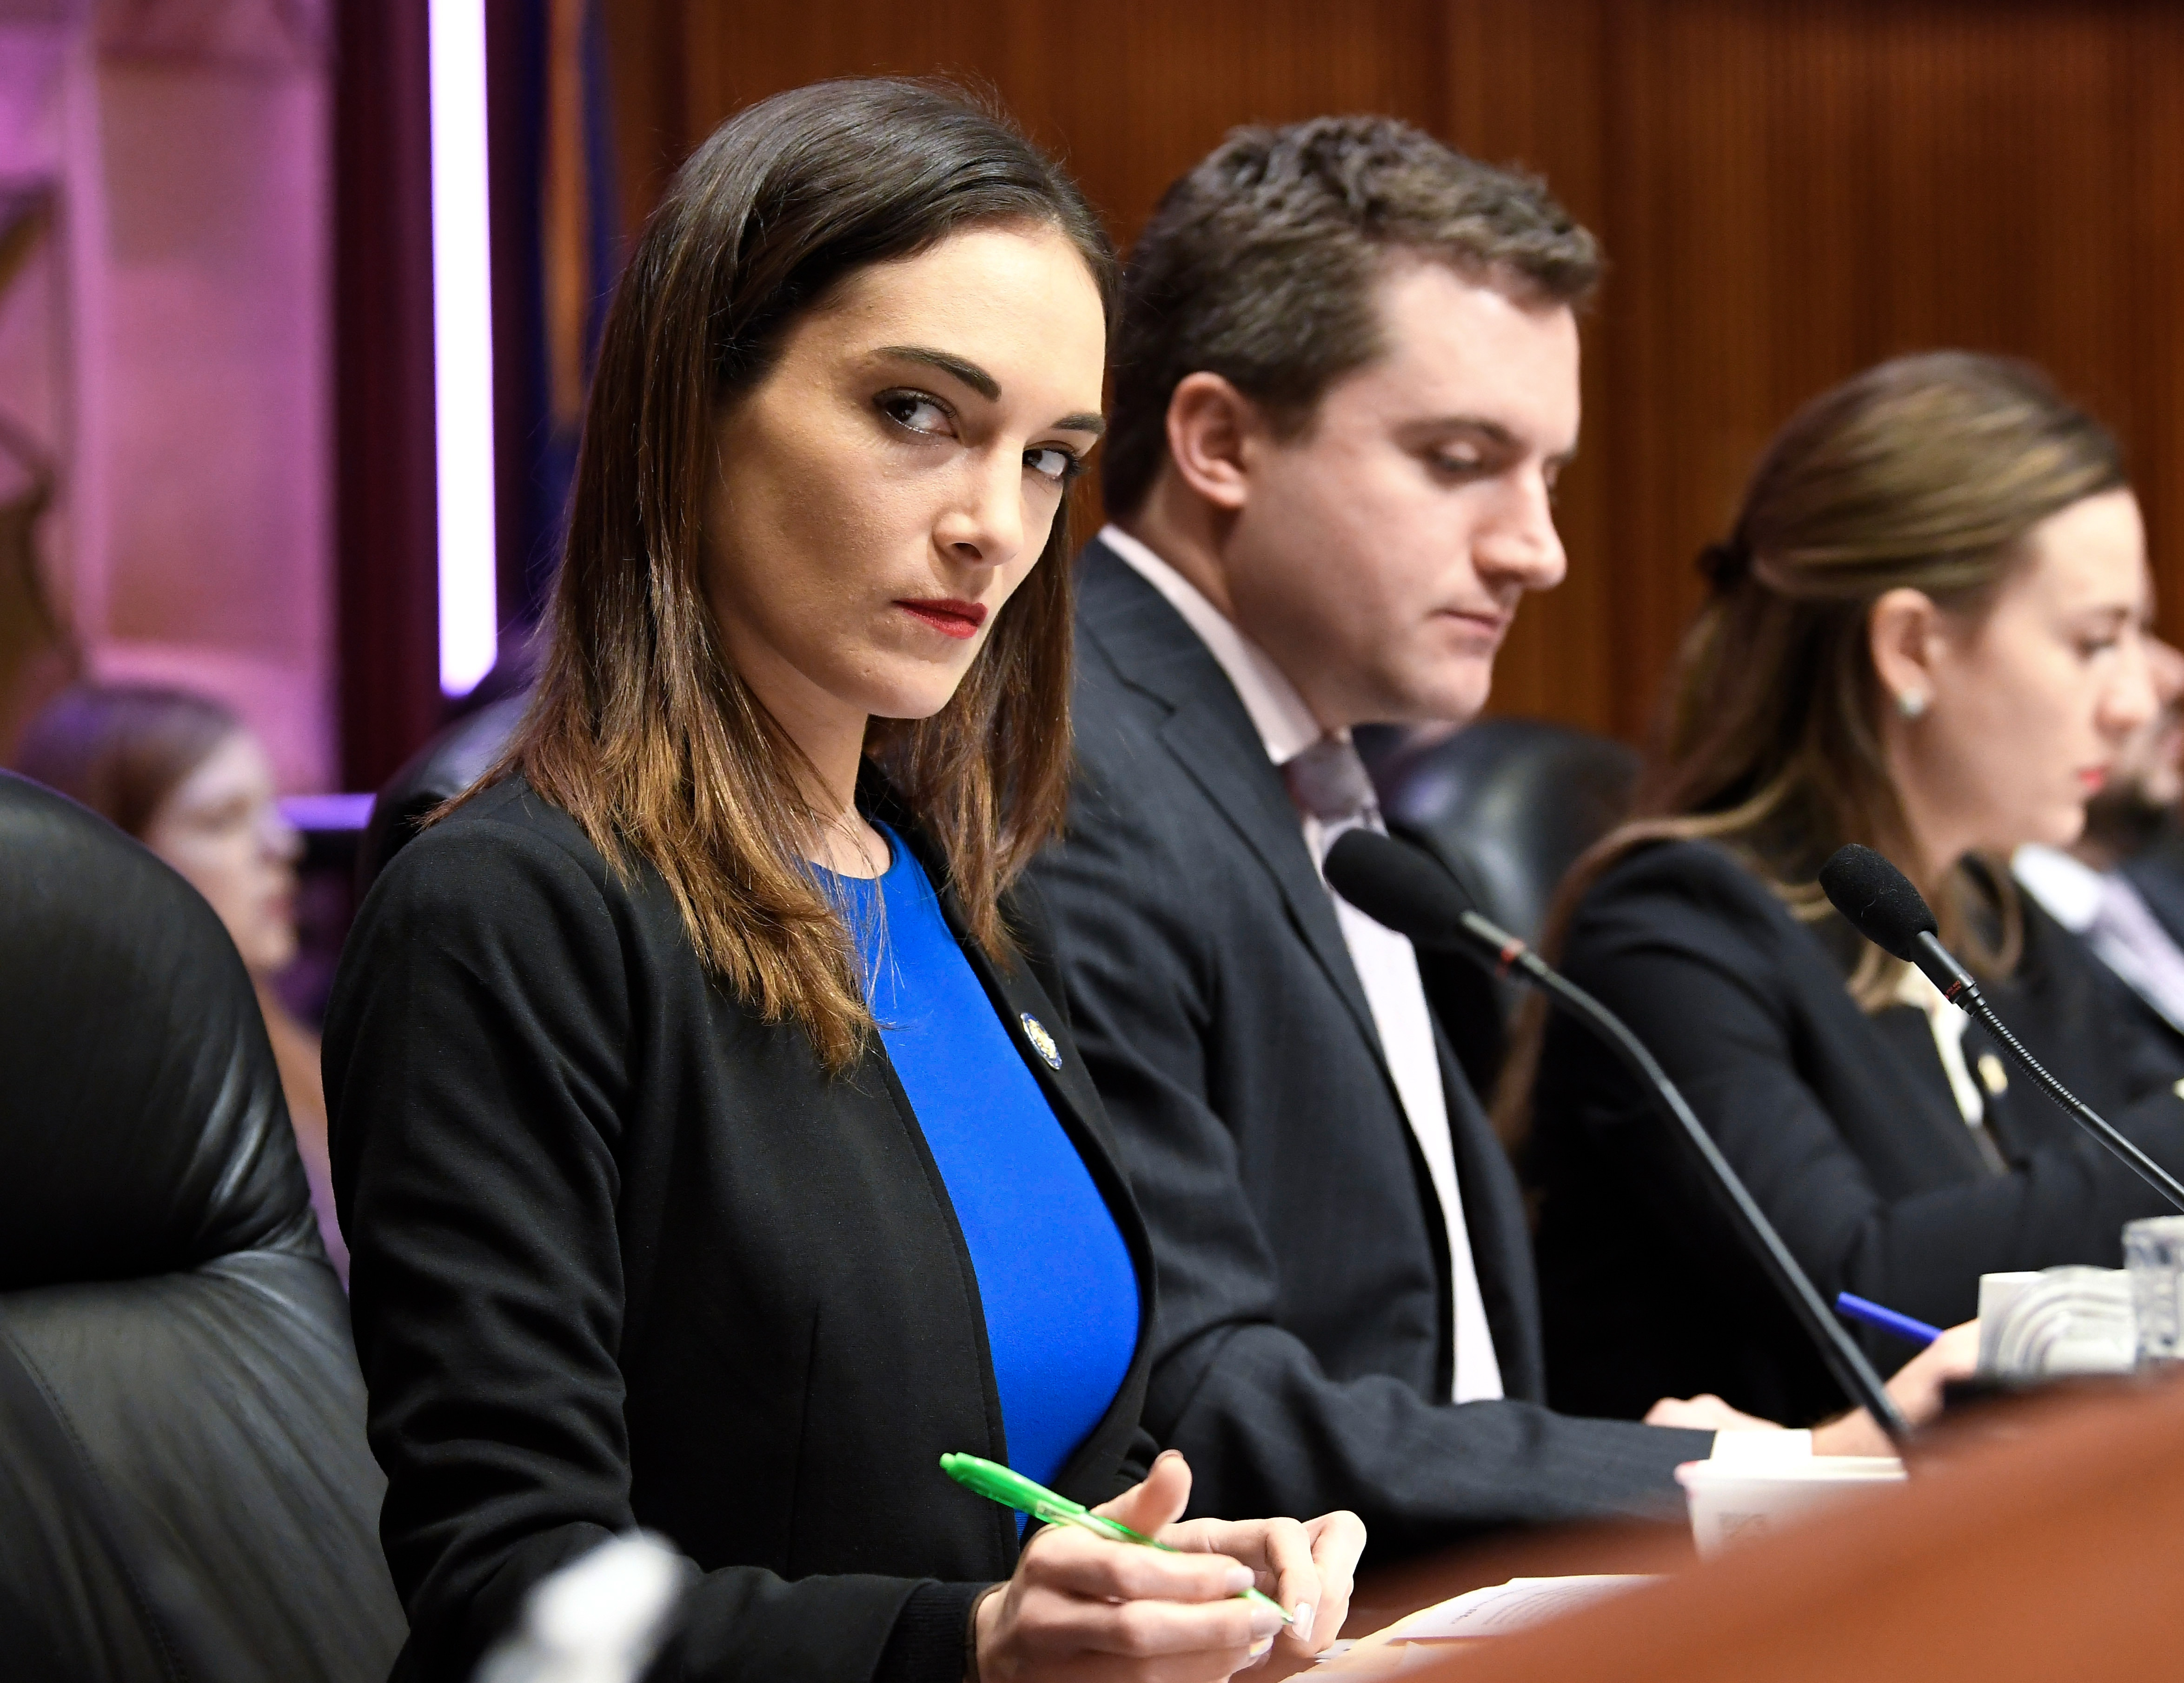 From left, New York state Senators' Julia Salazar, James Skoufis, and Alessandra Biaggi, listen as state legislators hold a public hearing on sexual harassment in the workplace Wednesday, Feb. 13, 2019, in Albany, N.Y. (AP Photo/Hans Pennink)